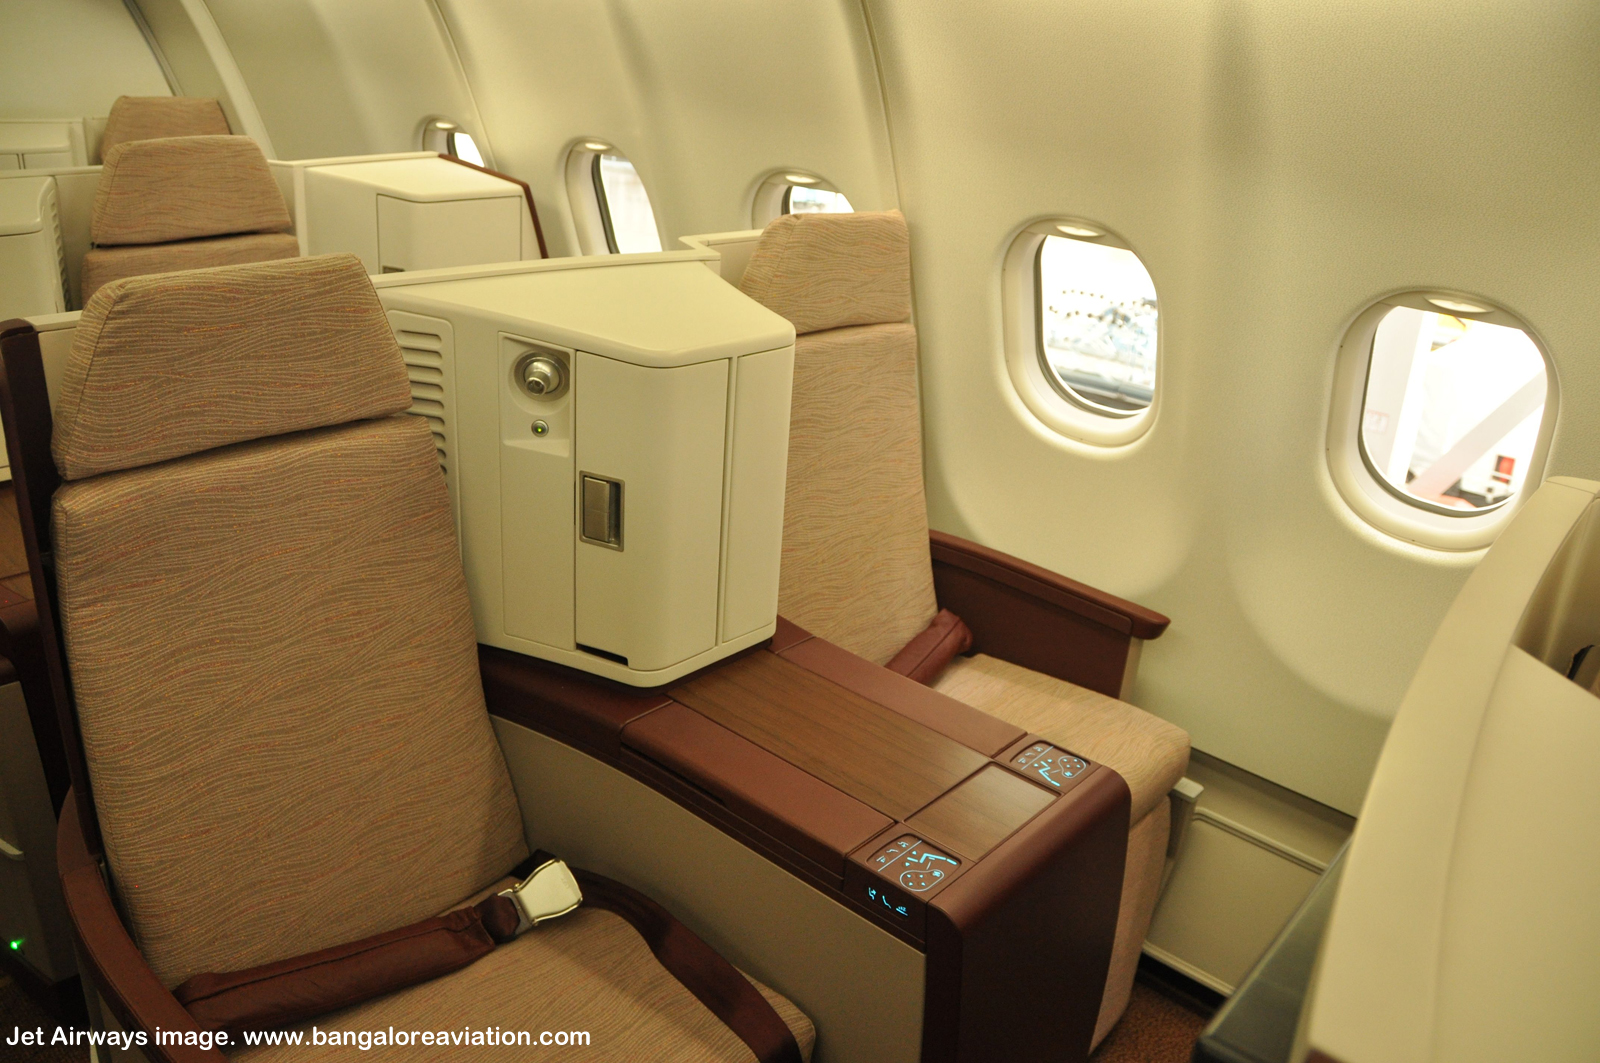 Jet Airways Airbus A330-300 Business Class Seats